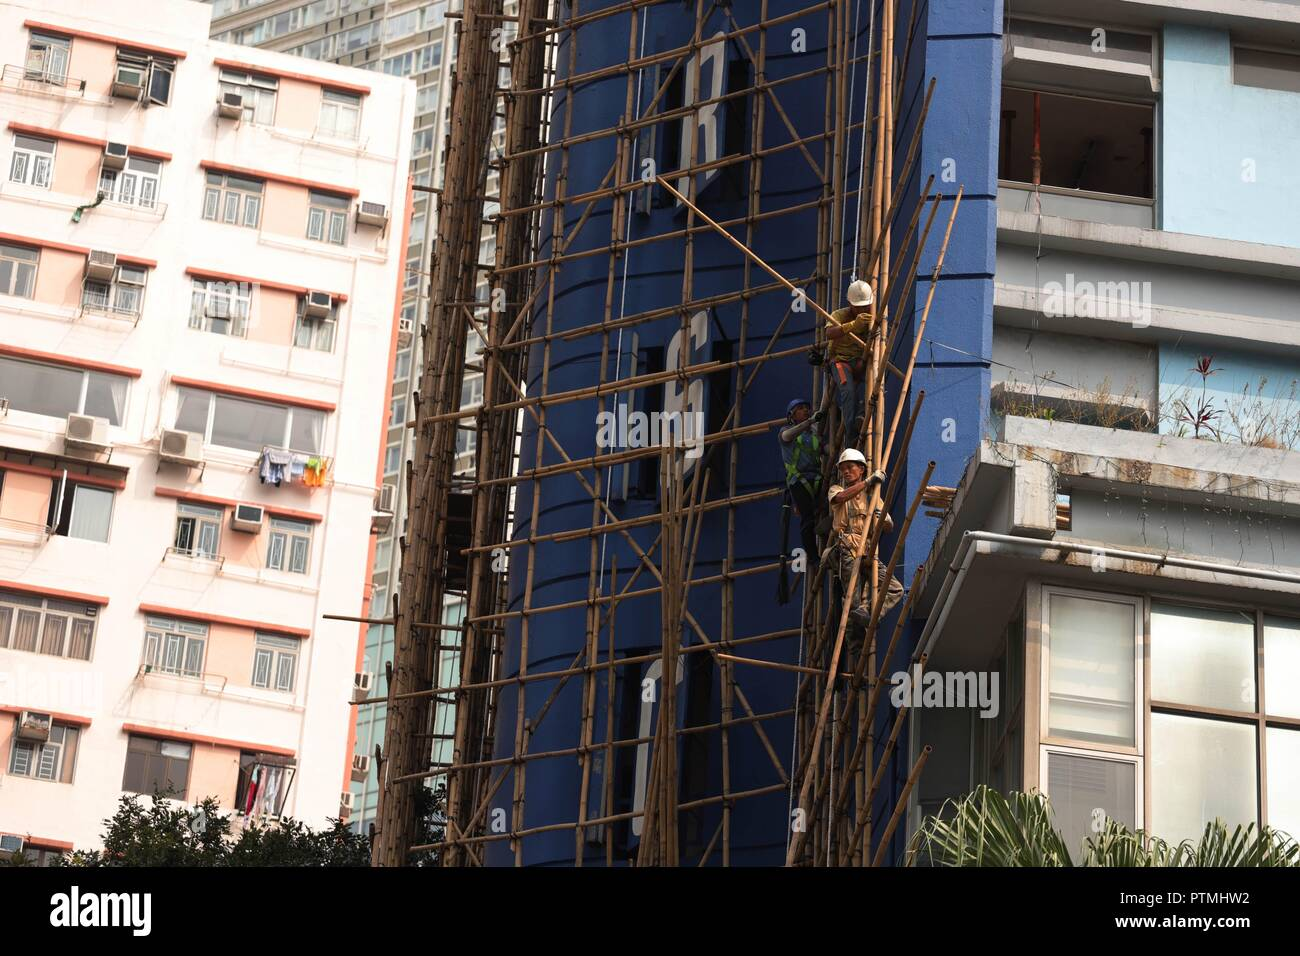 Hong Kong, CHINA. 10th Oct, 2018. Hong Kong is where Chinese traditional art of bamboo scaffolding is being kept as a classic architectural craft.Oct-10, 2018 Hong Kong.ZUMA/Liau Chung-ren Credit: Liau Chung-ren/ZUMA Wire/Alamy Live News - Stock Image